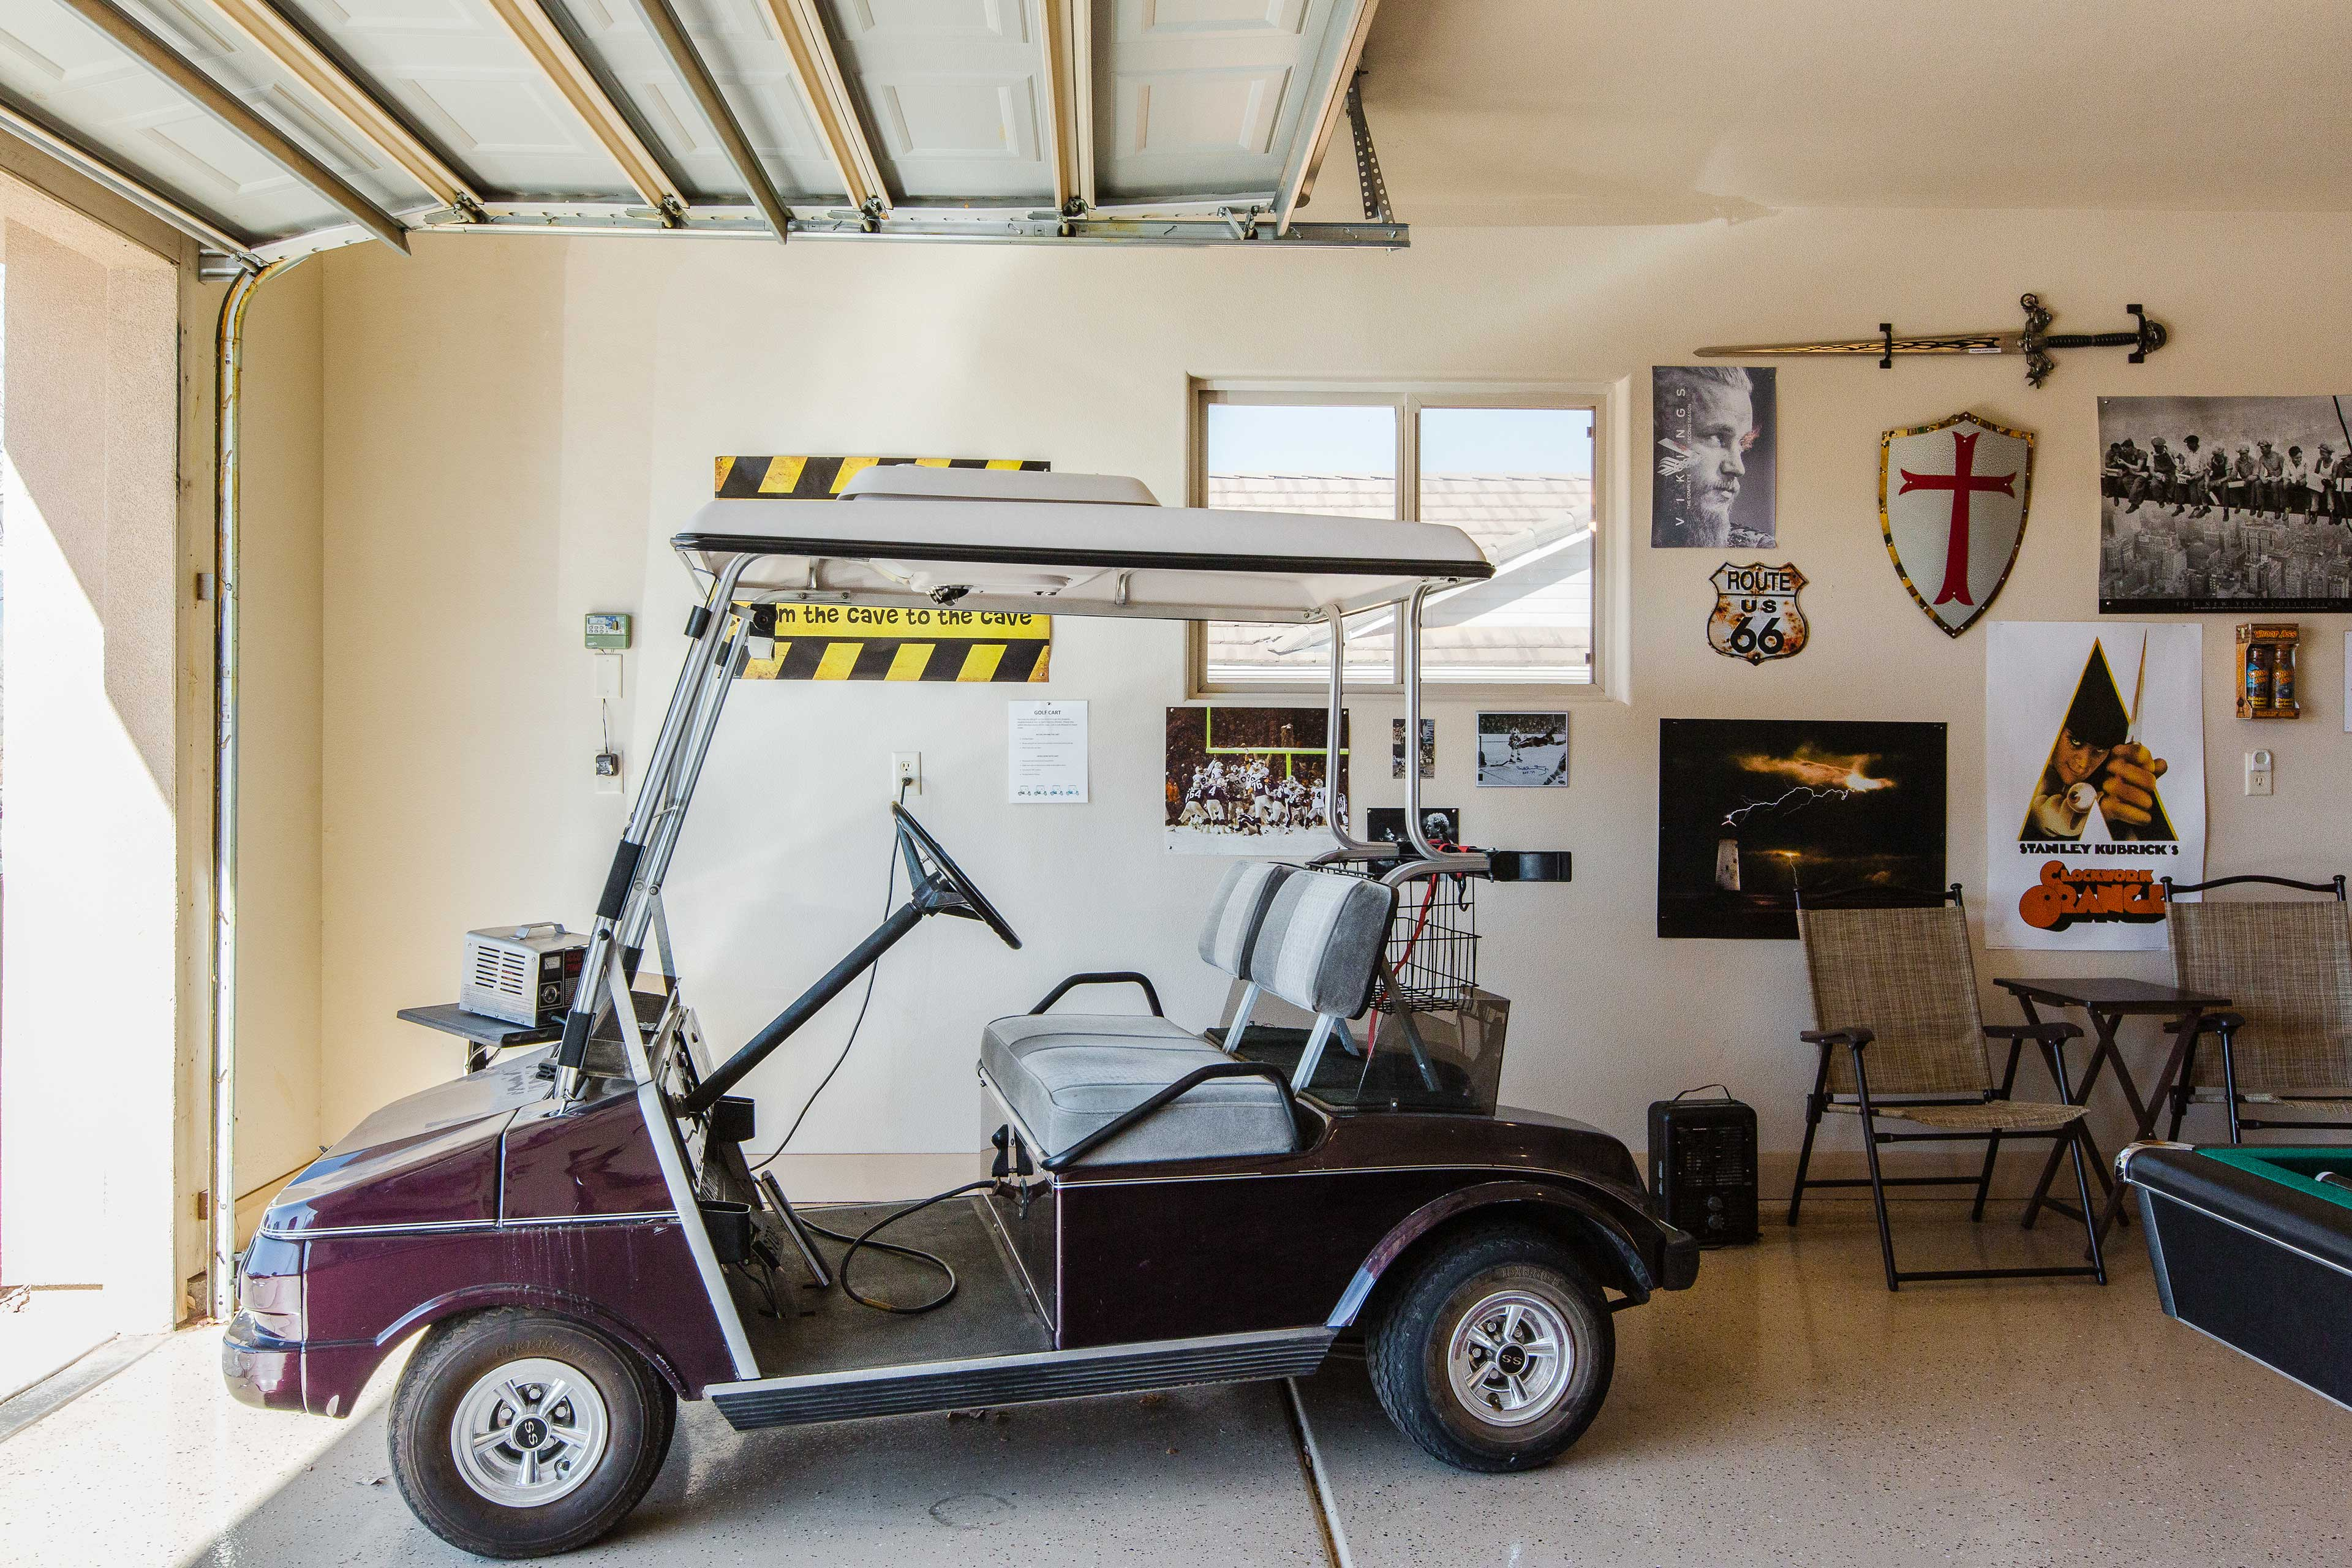 The golf cart allows you to come and go with ease.